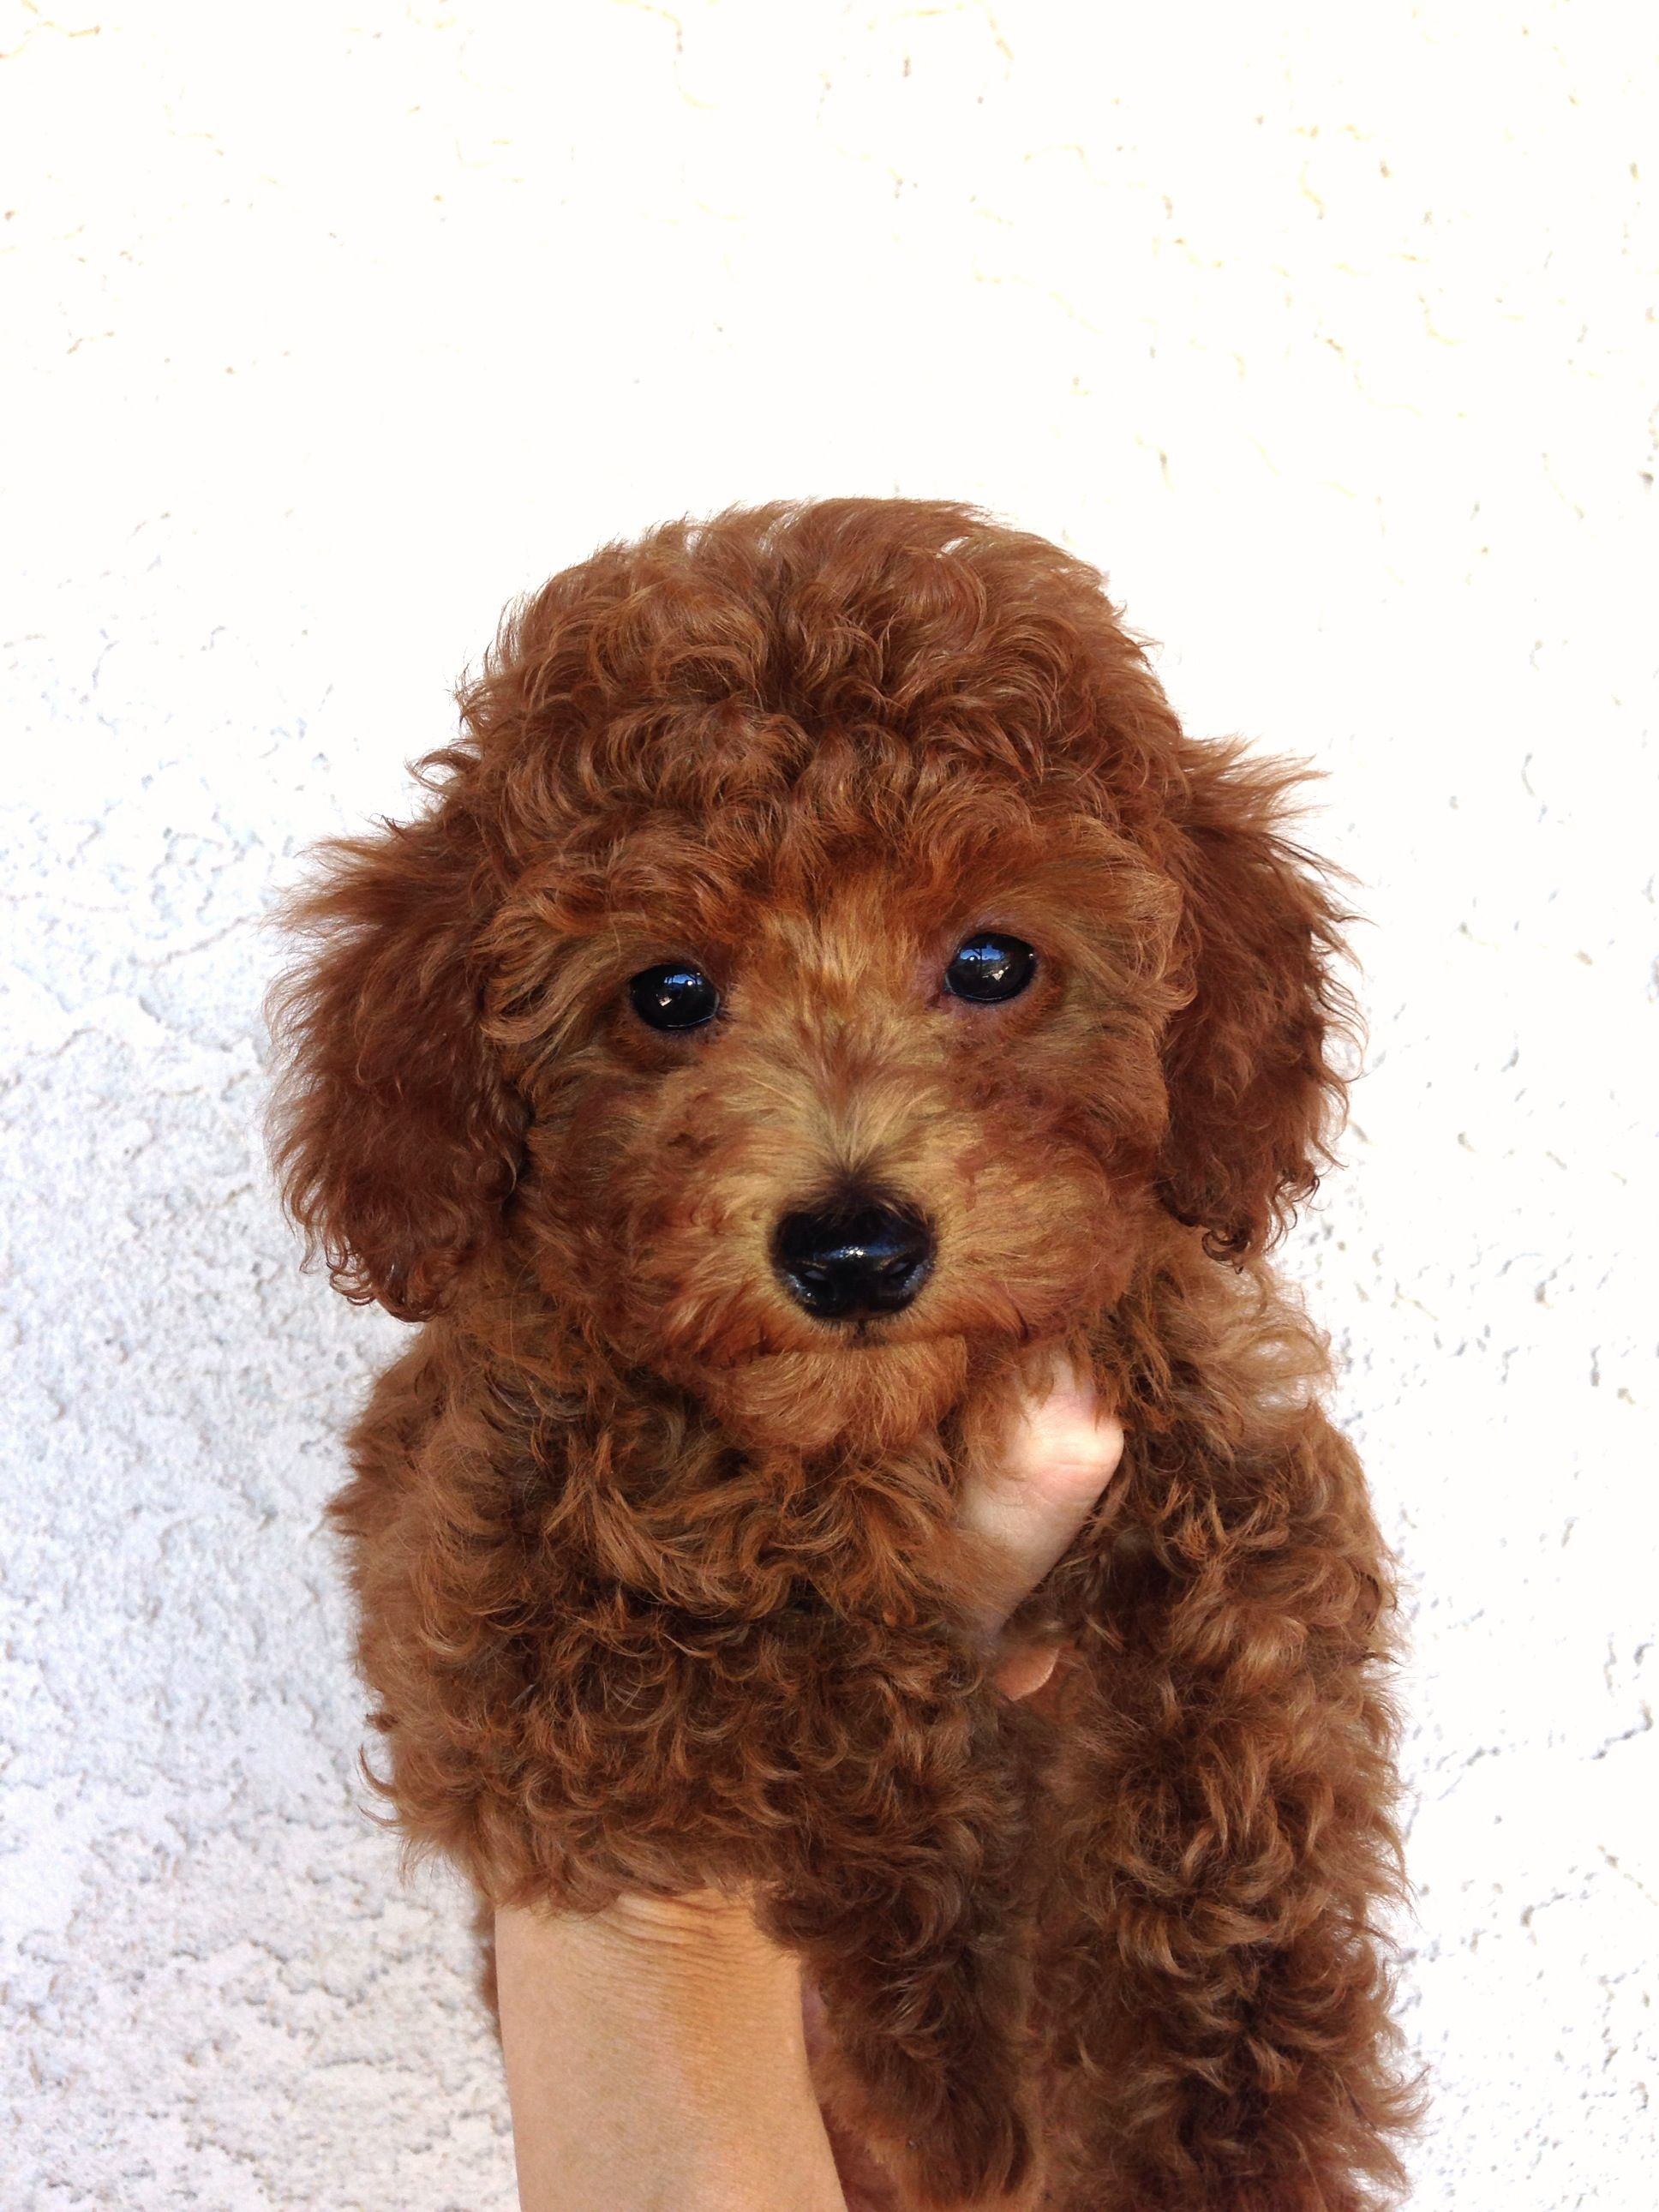 Little Boy West Coast Poodles Red Poodle Puppy Poodle Puppy